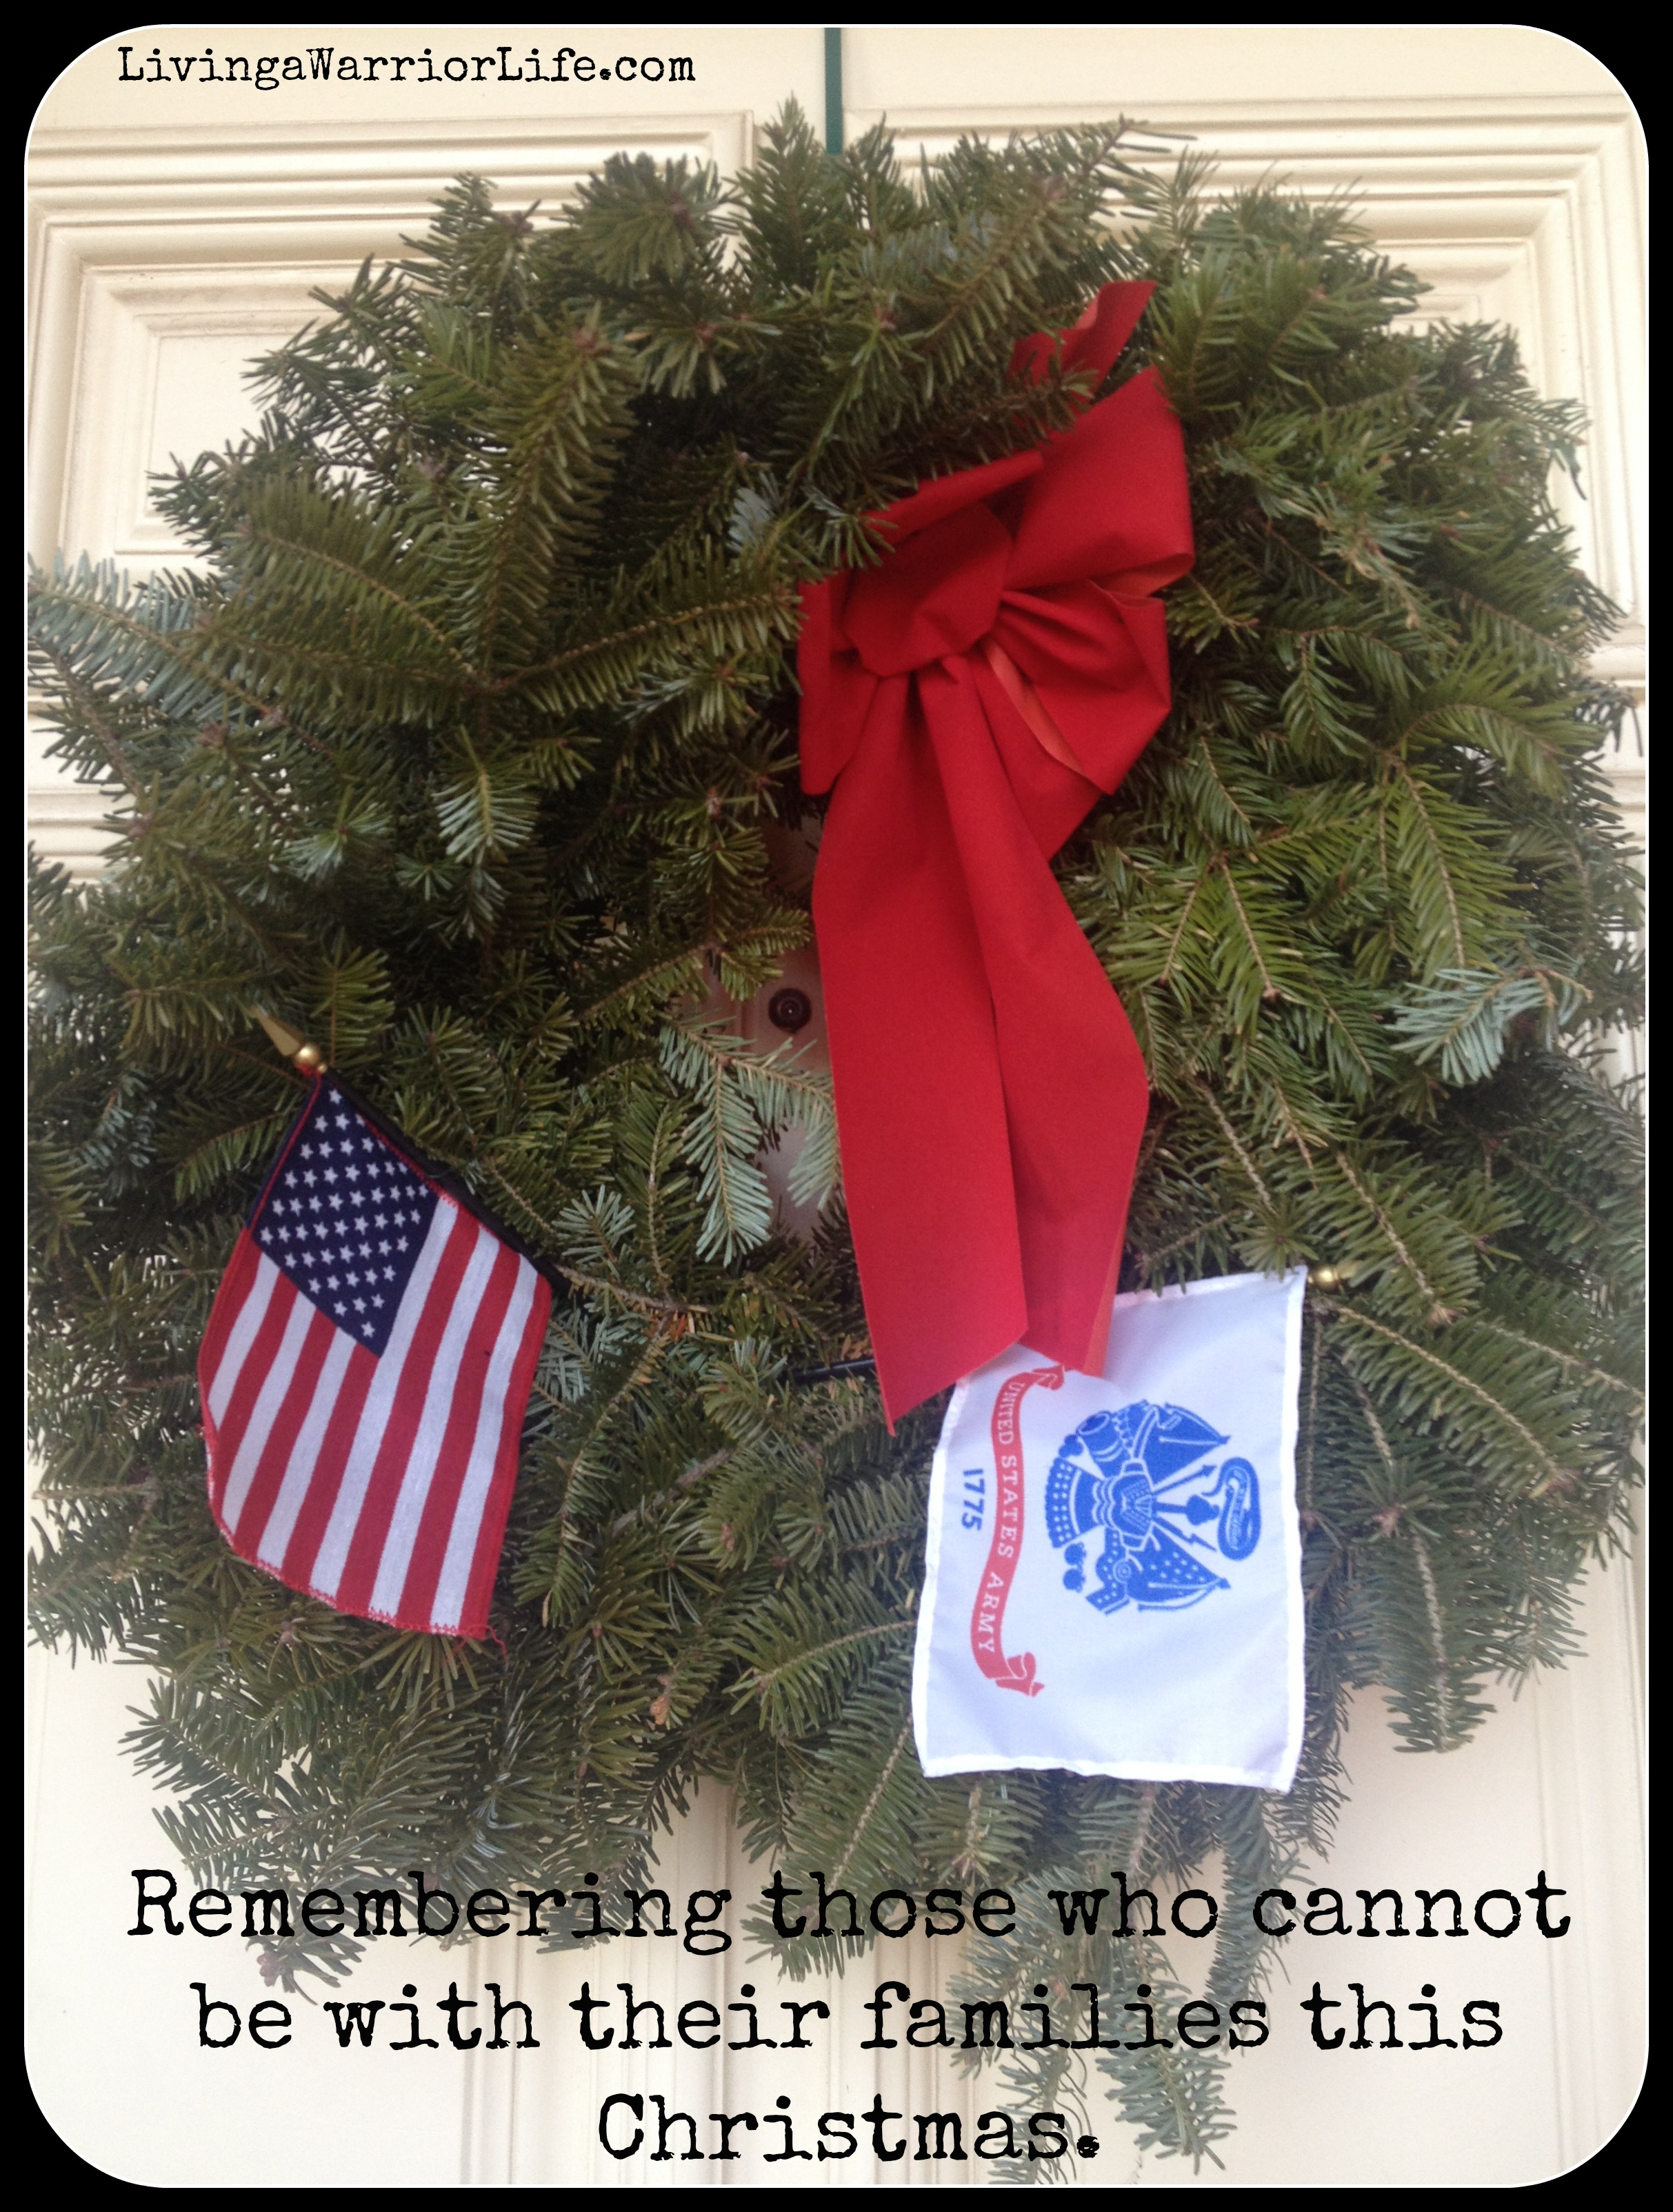 Reflections on a Deployment Christmas